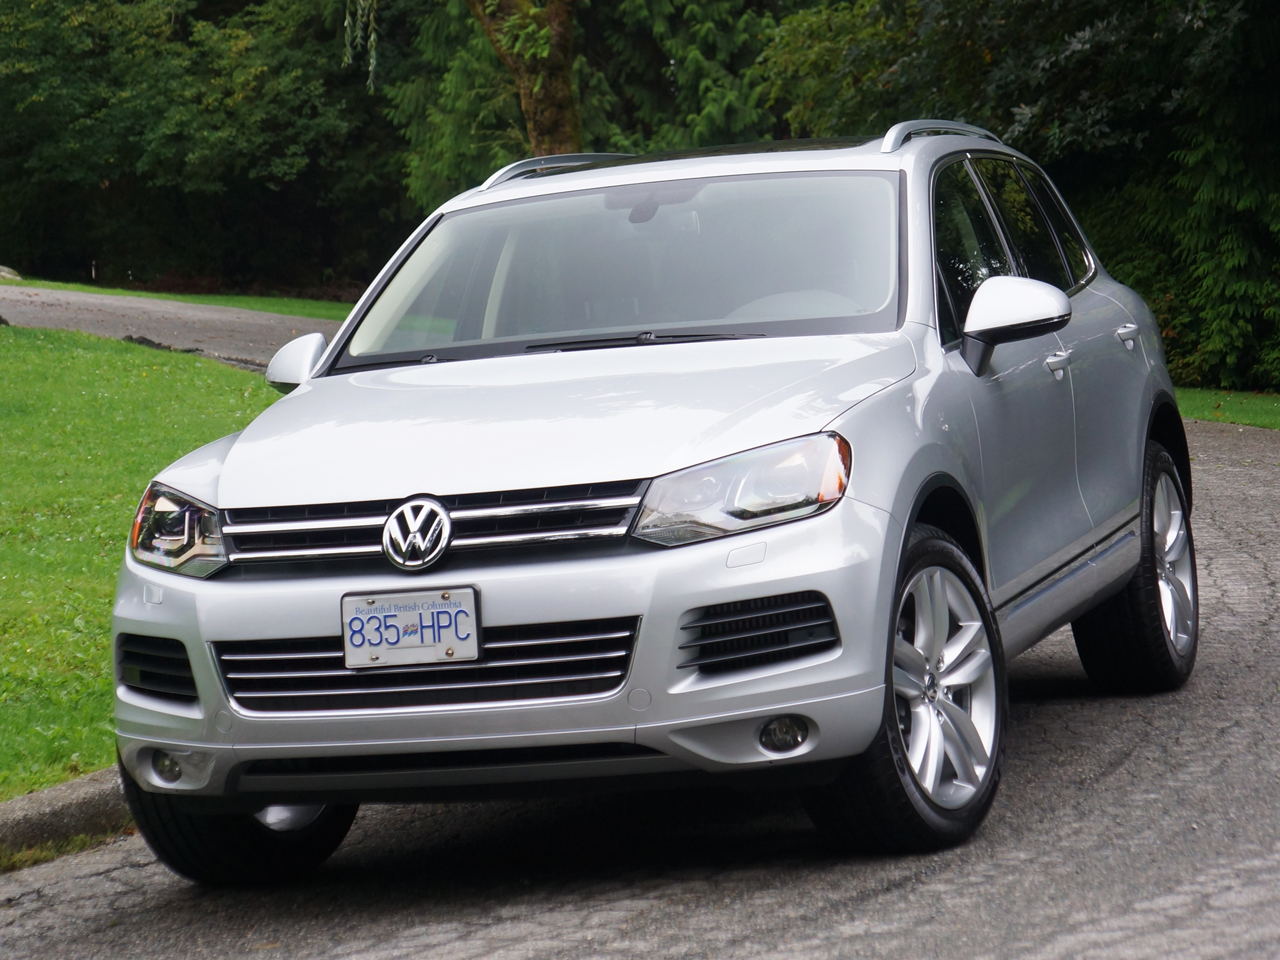 2013 volkswagen touareg tdi road test review carcostcanada. Black Bedroom Furniture Sets. Home Design Ideas